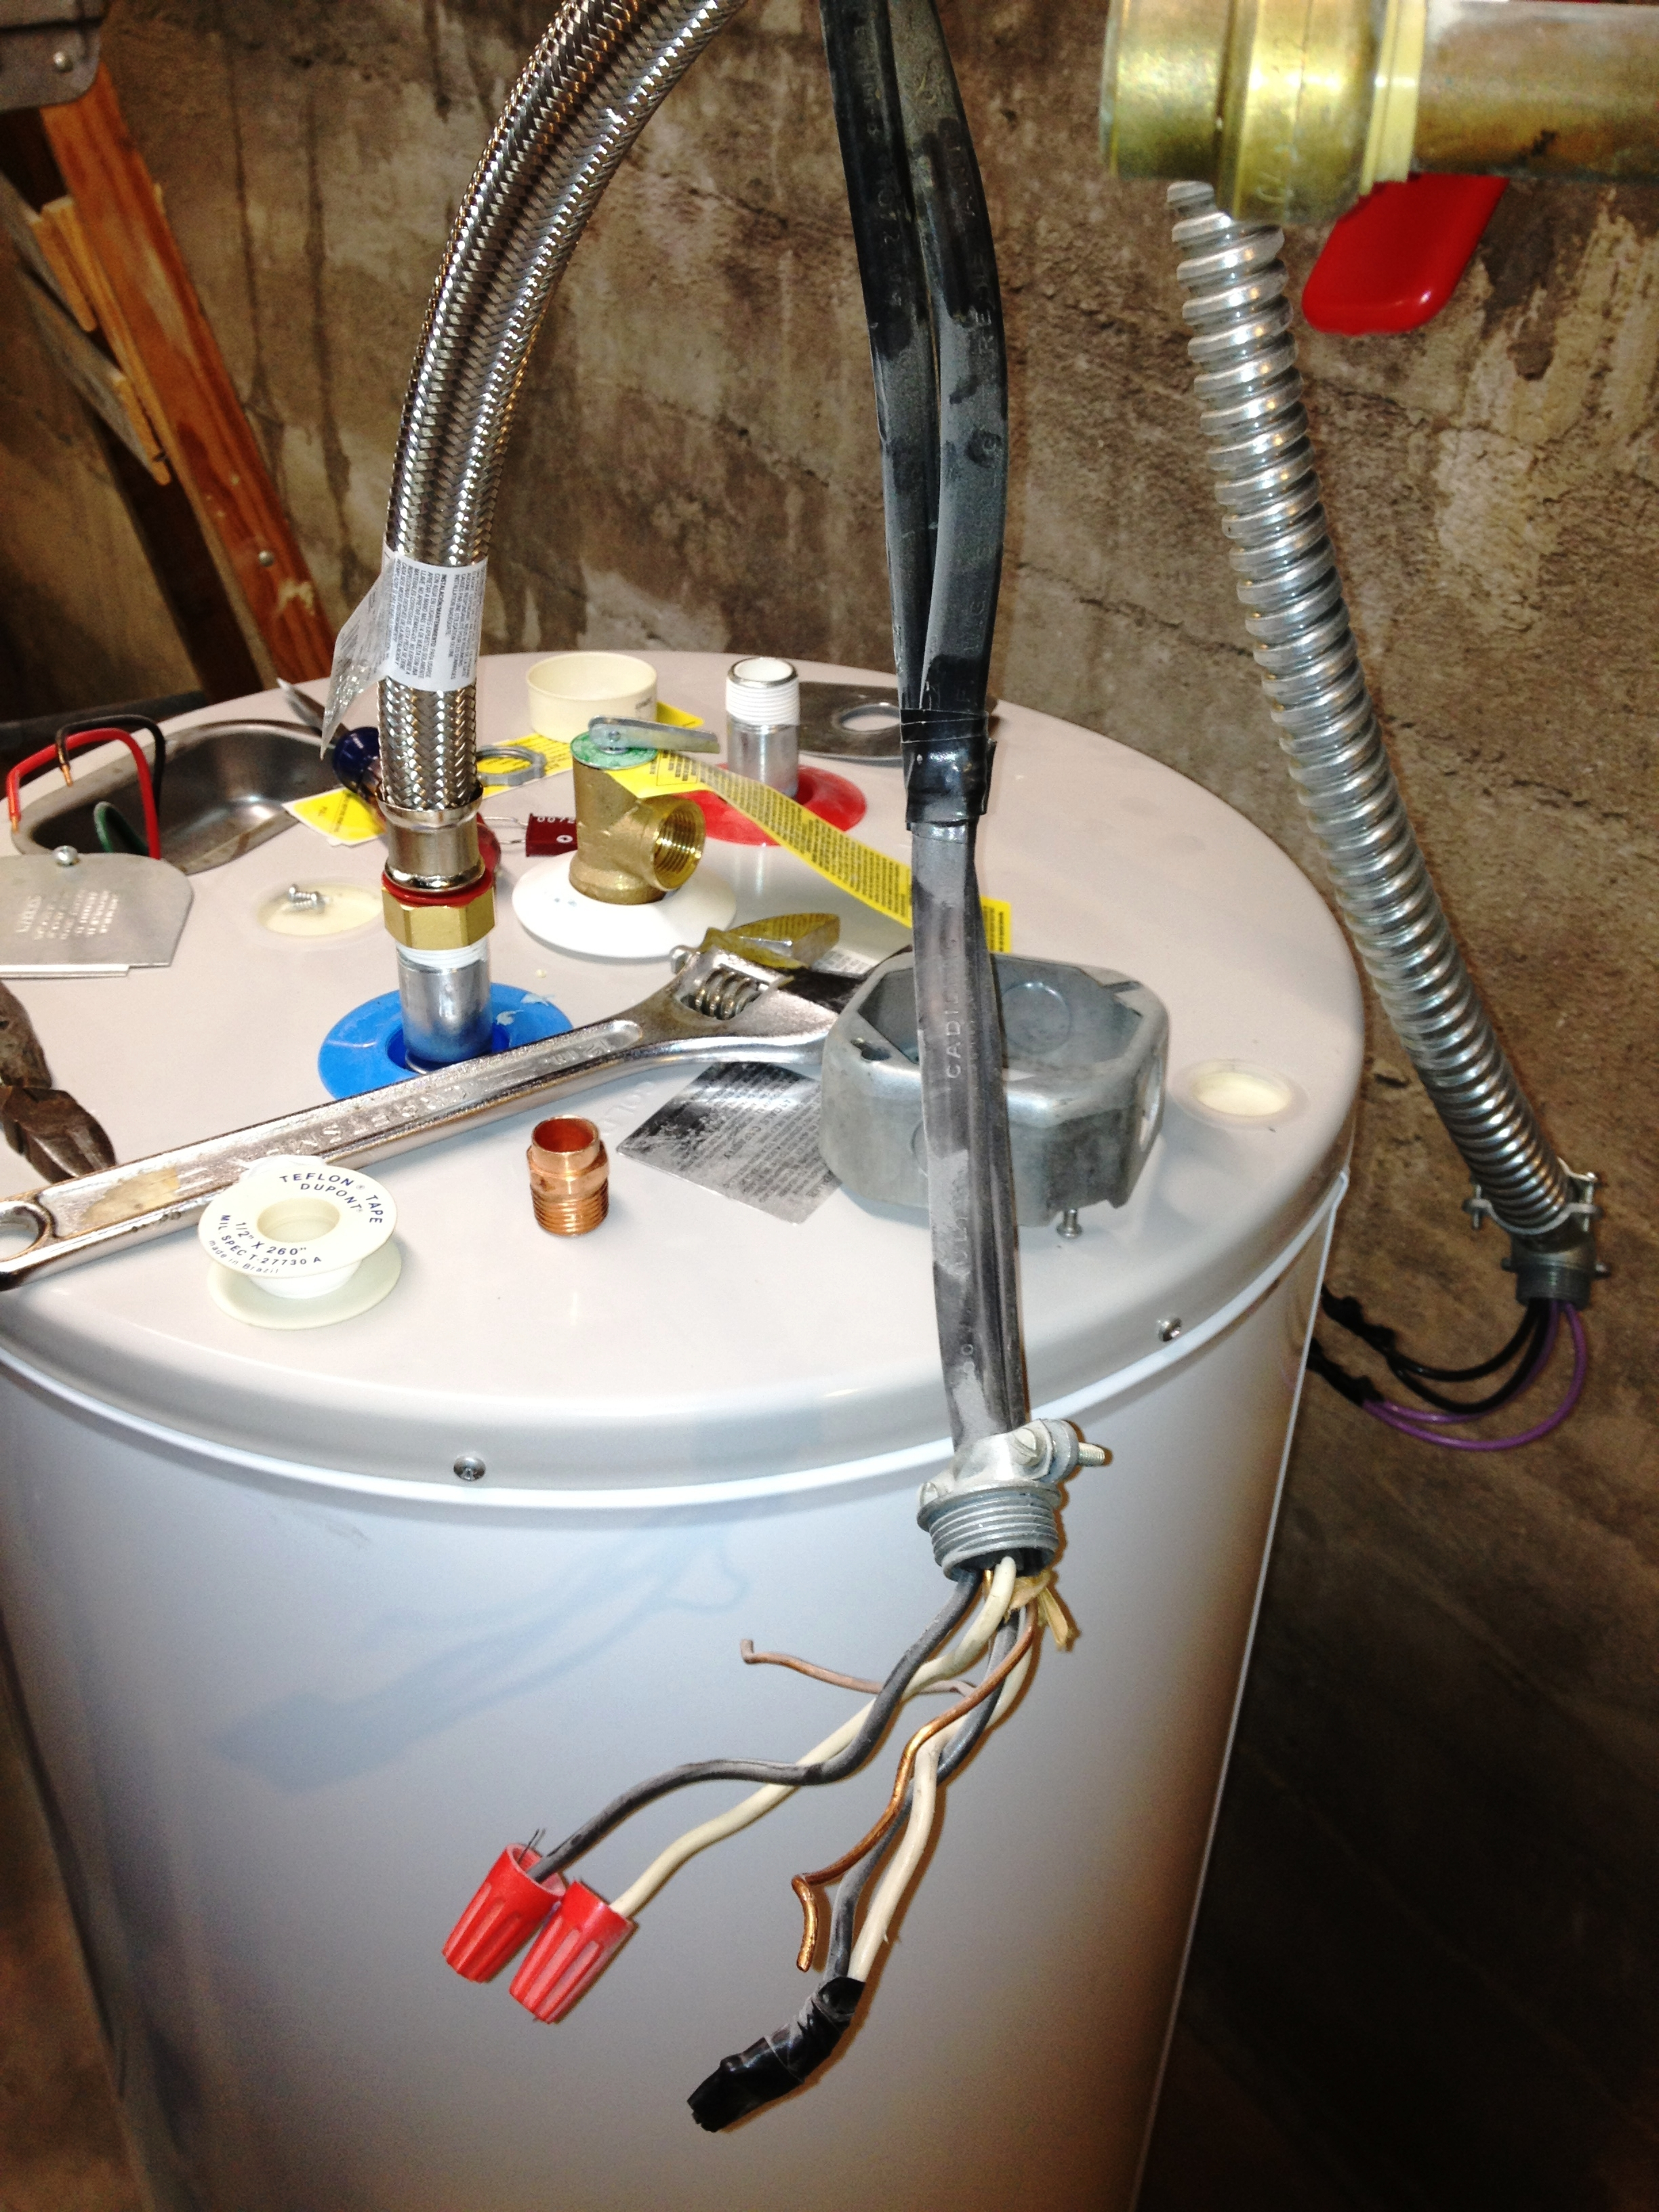 I Am Replacing An Already Removed Electric Water Heater With A New Electric Water Heater  The